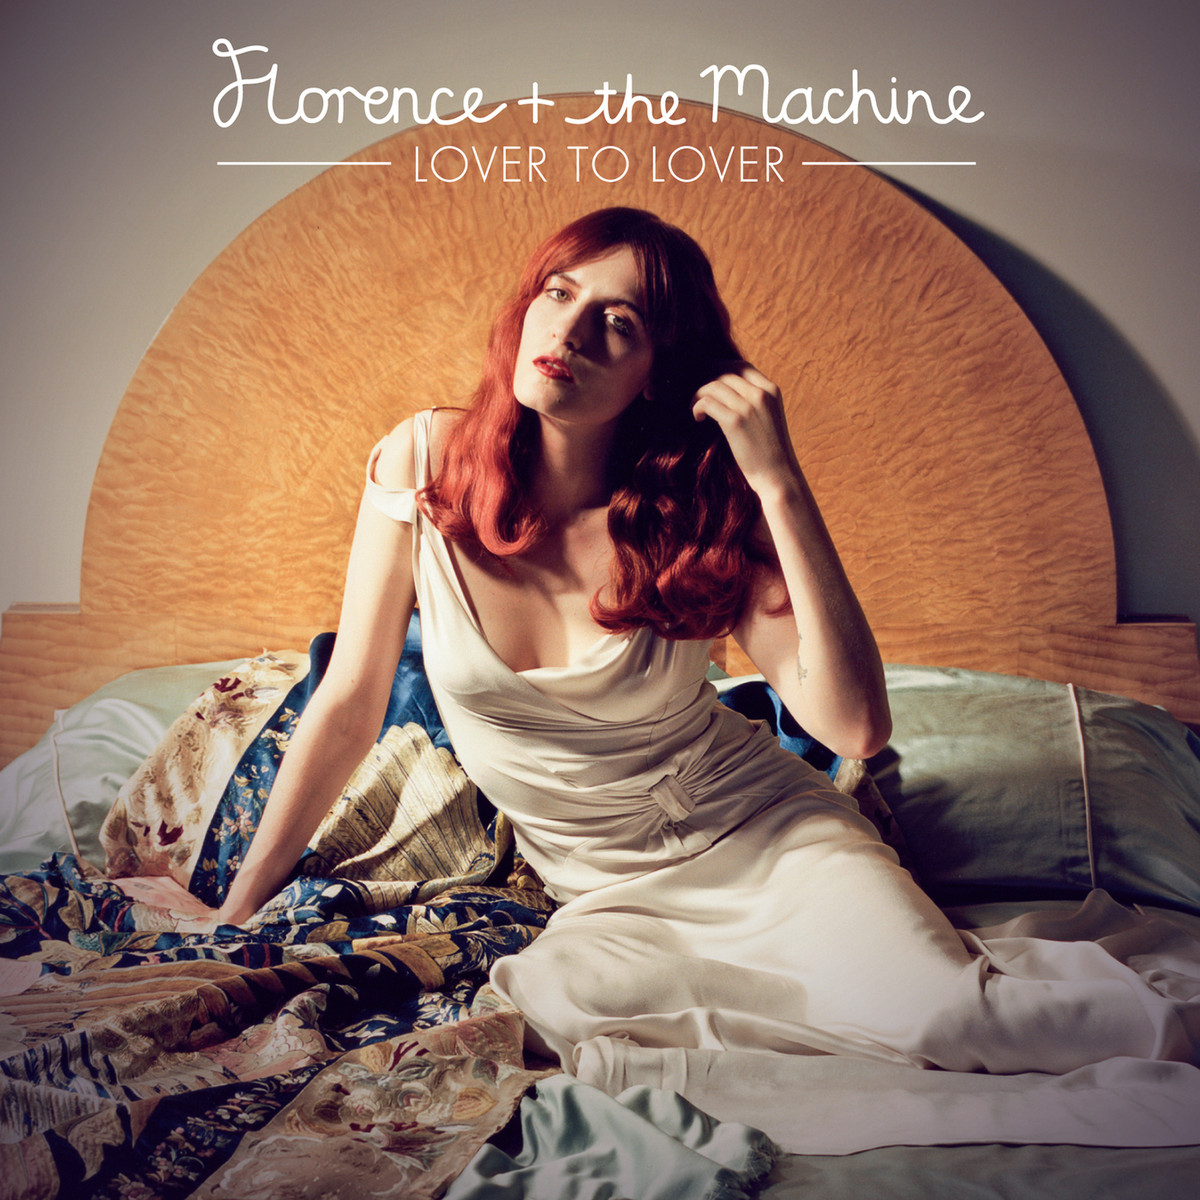 Lover to Lover – Florence and the Machine